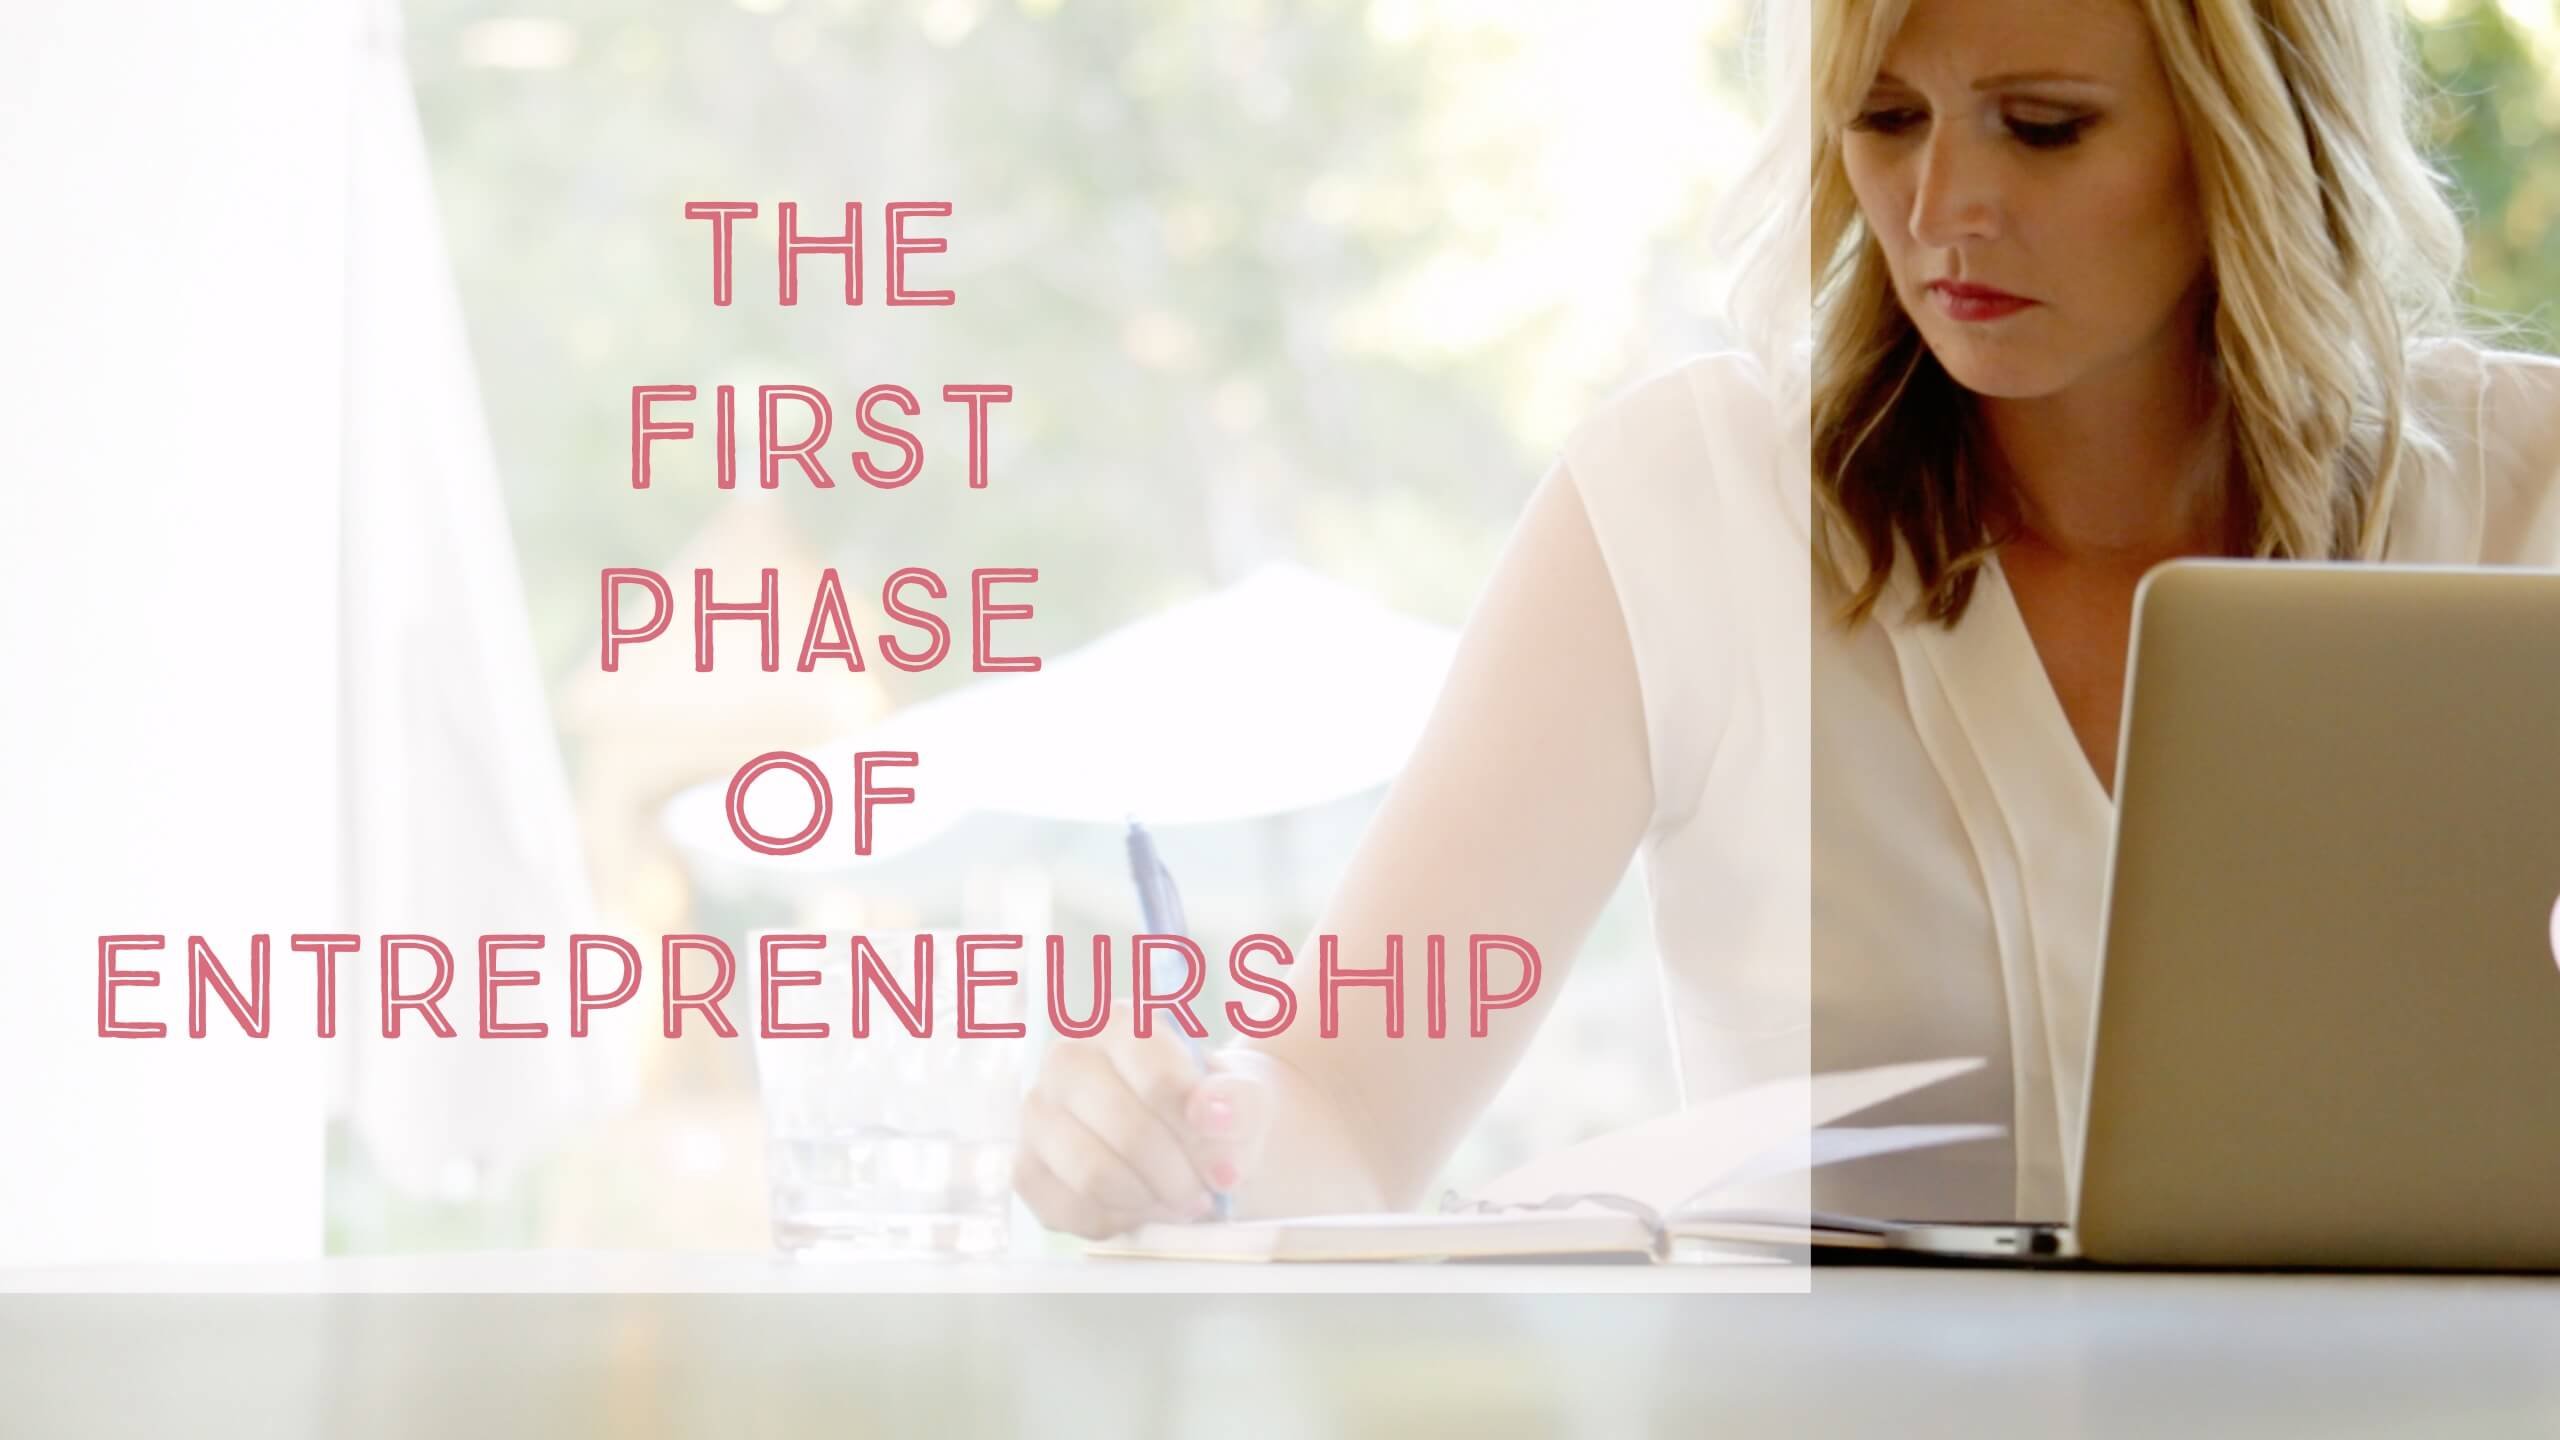 The First Phase of Entrepreneurship